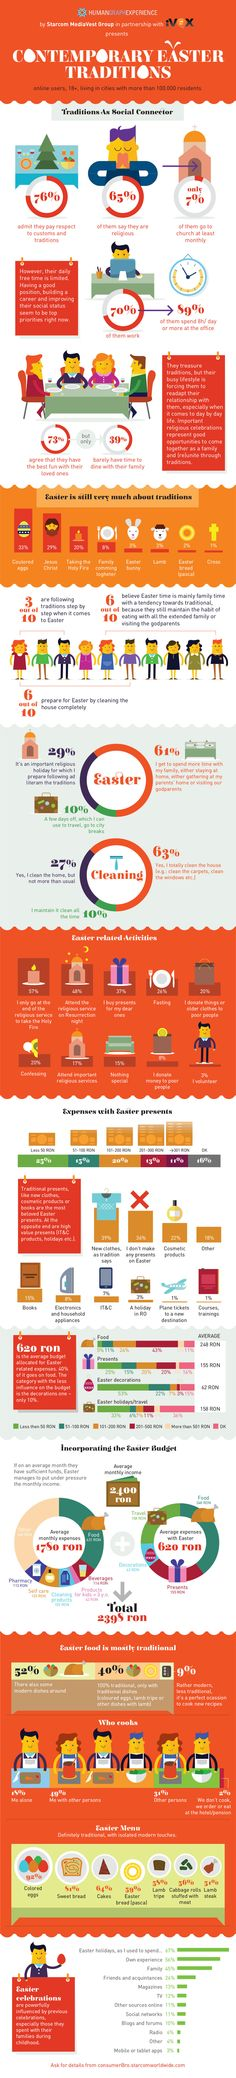 Contemporary Easter Traditions - April Infographic